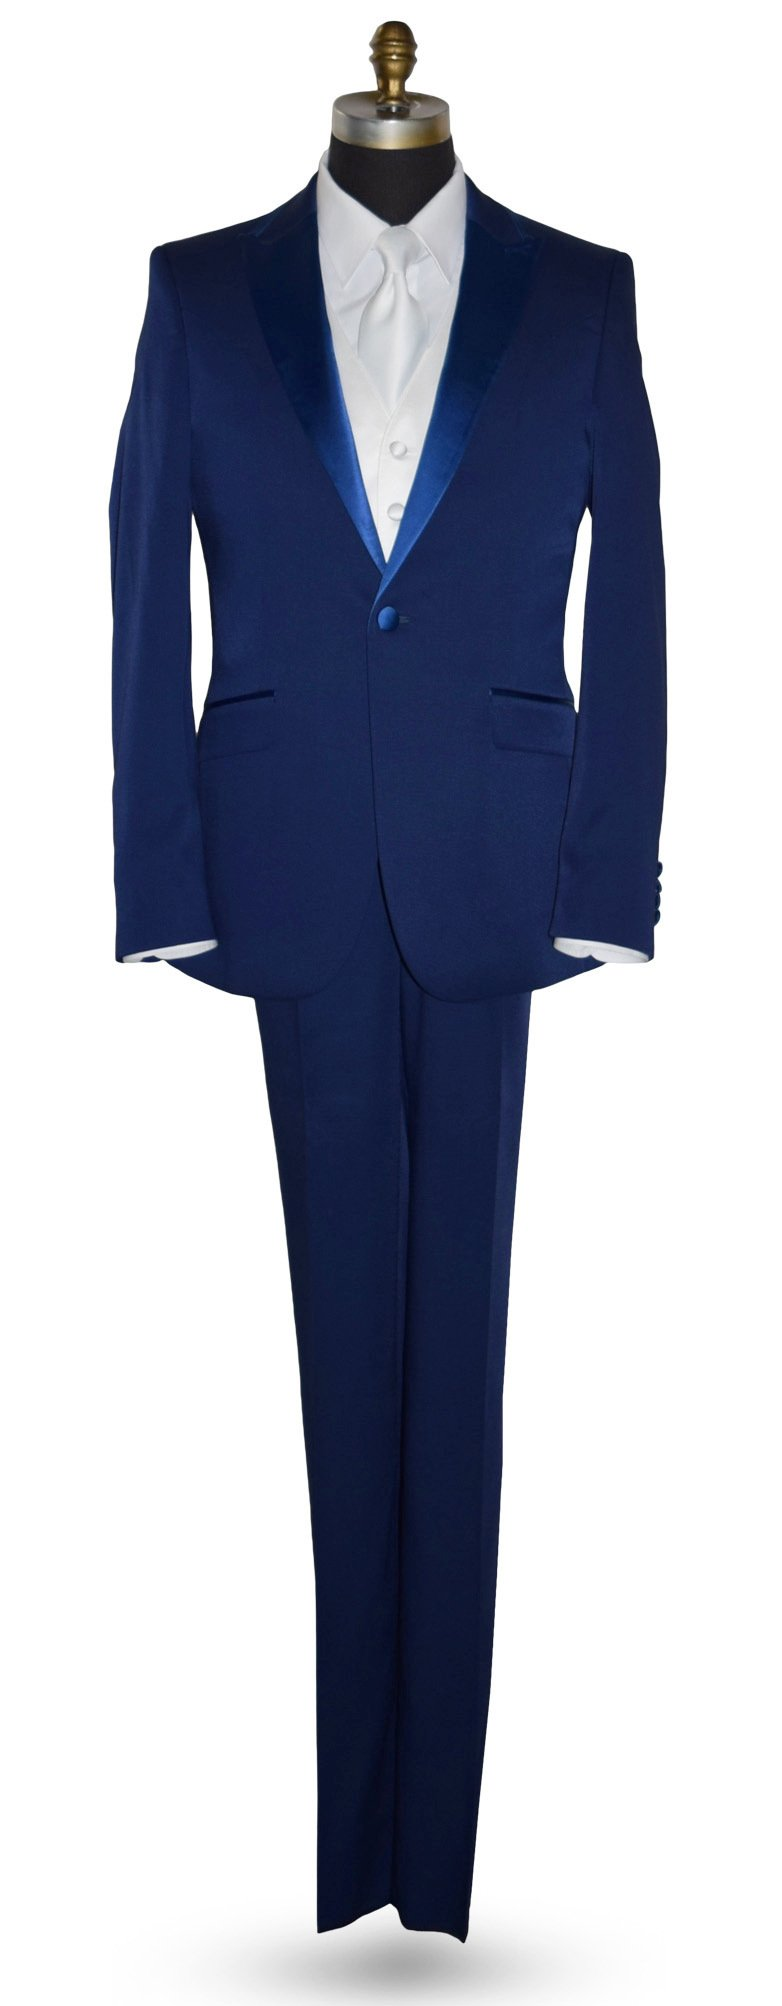 PERSIAN BLUE TUXEDO COAT AND PANTS SET